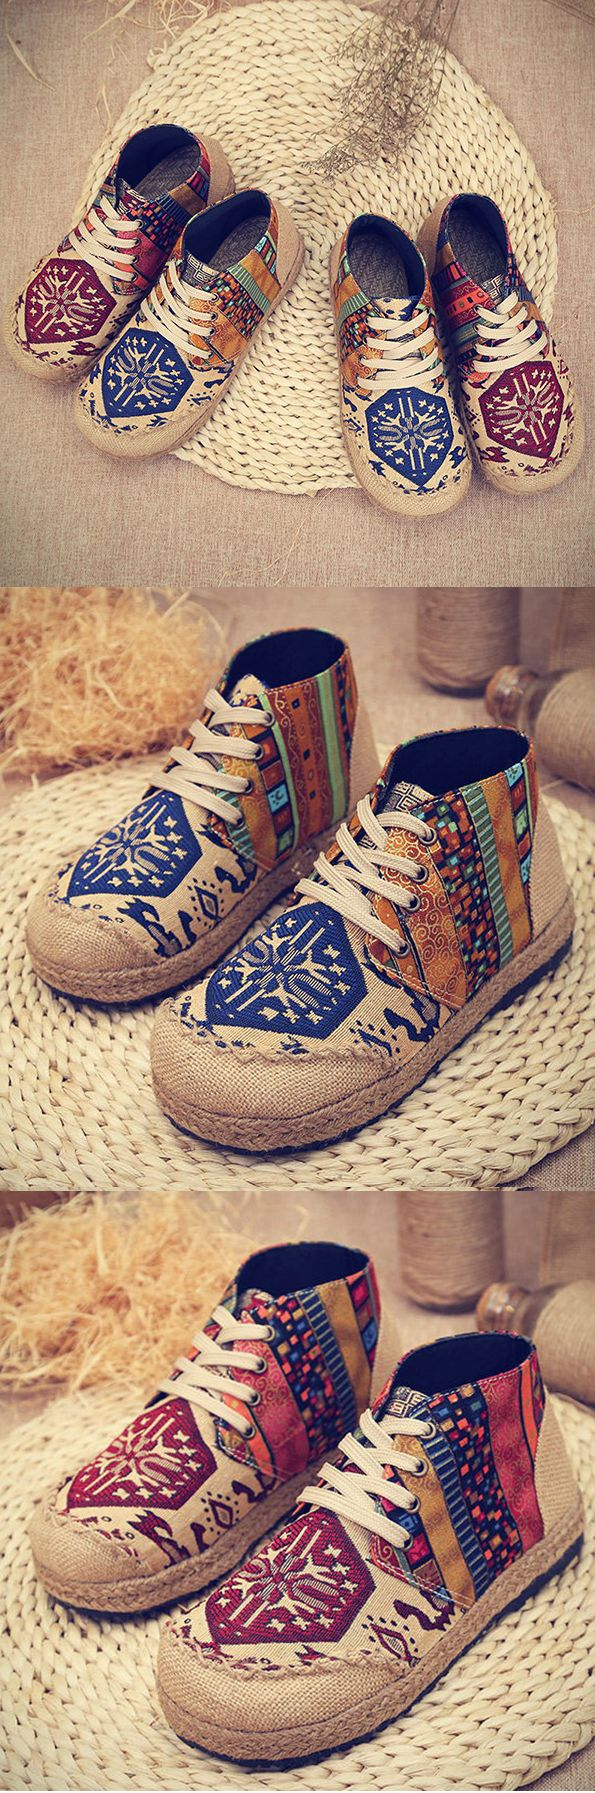 US$22.20 Vintage Colorful Pattern Canvas #Boots